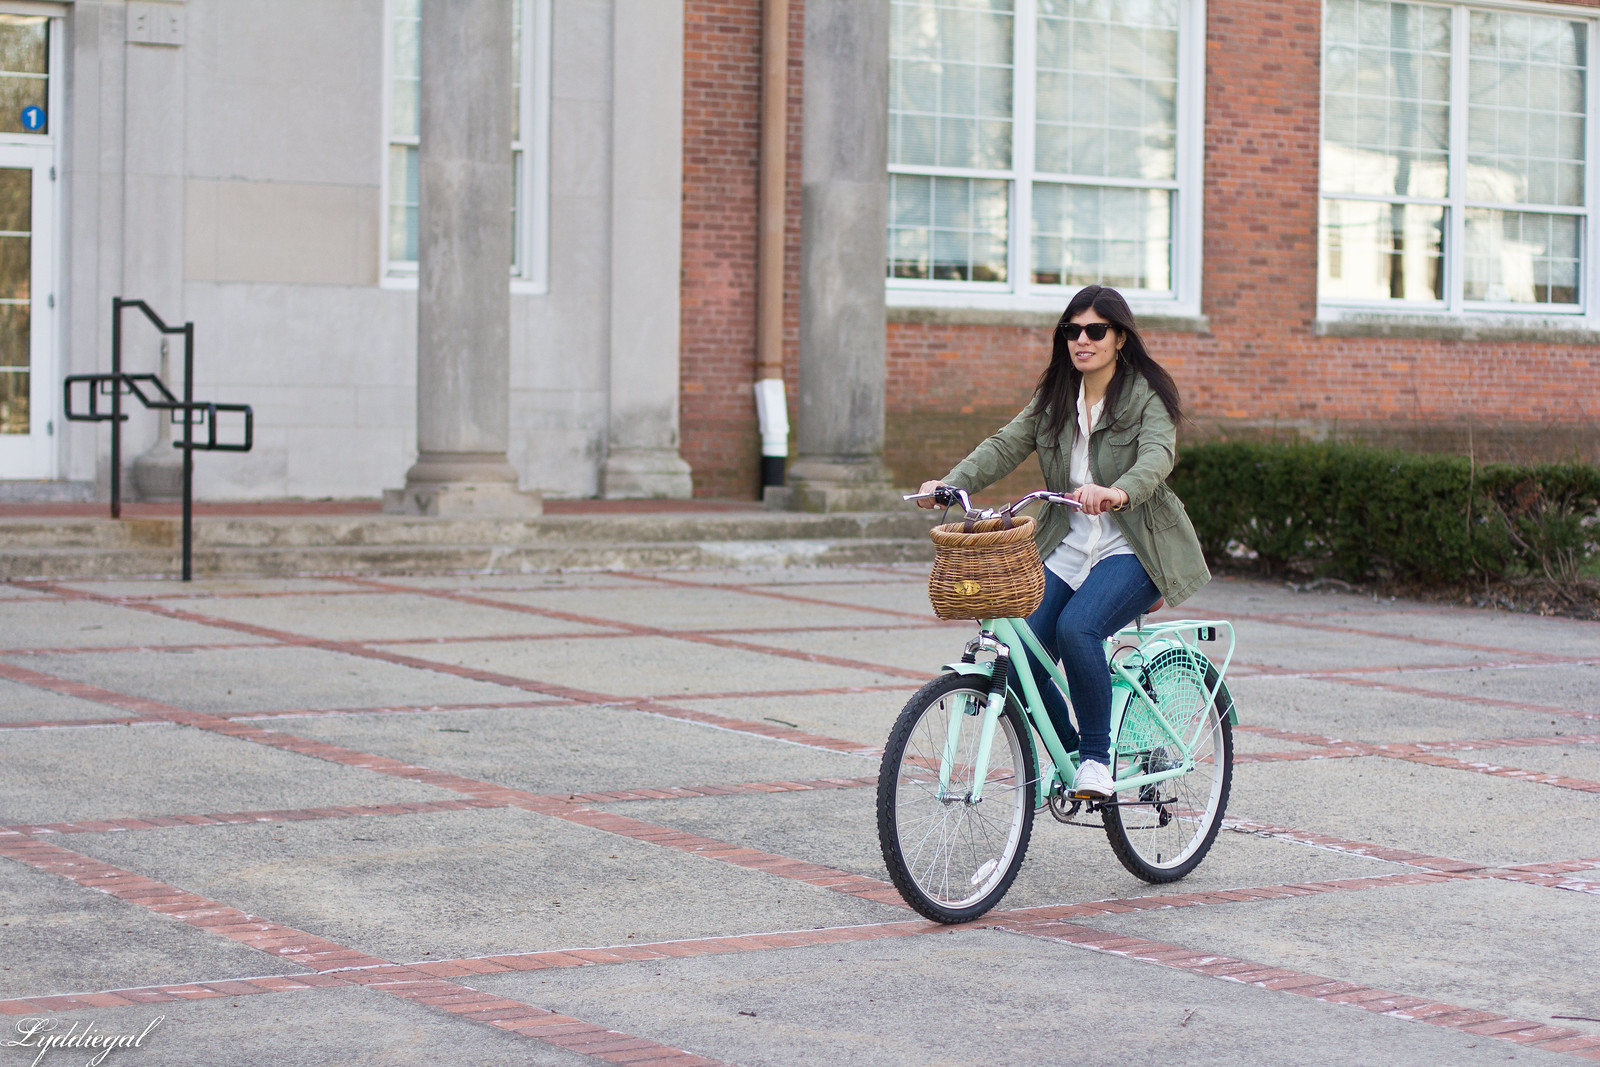 bike riding outfit, white shirt, green field jacket, white converse-4.jpg